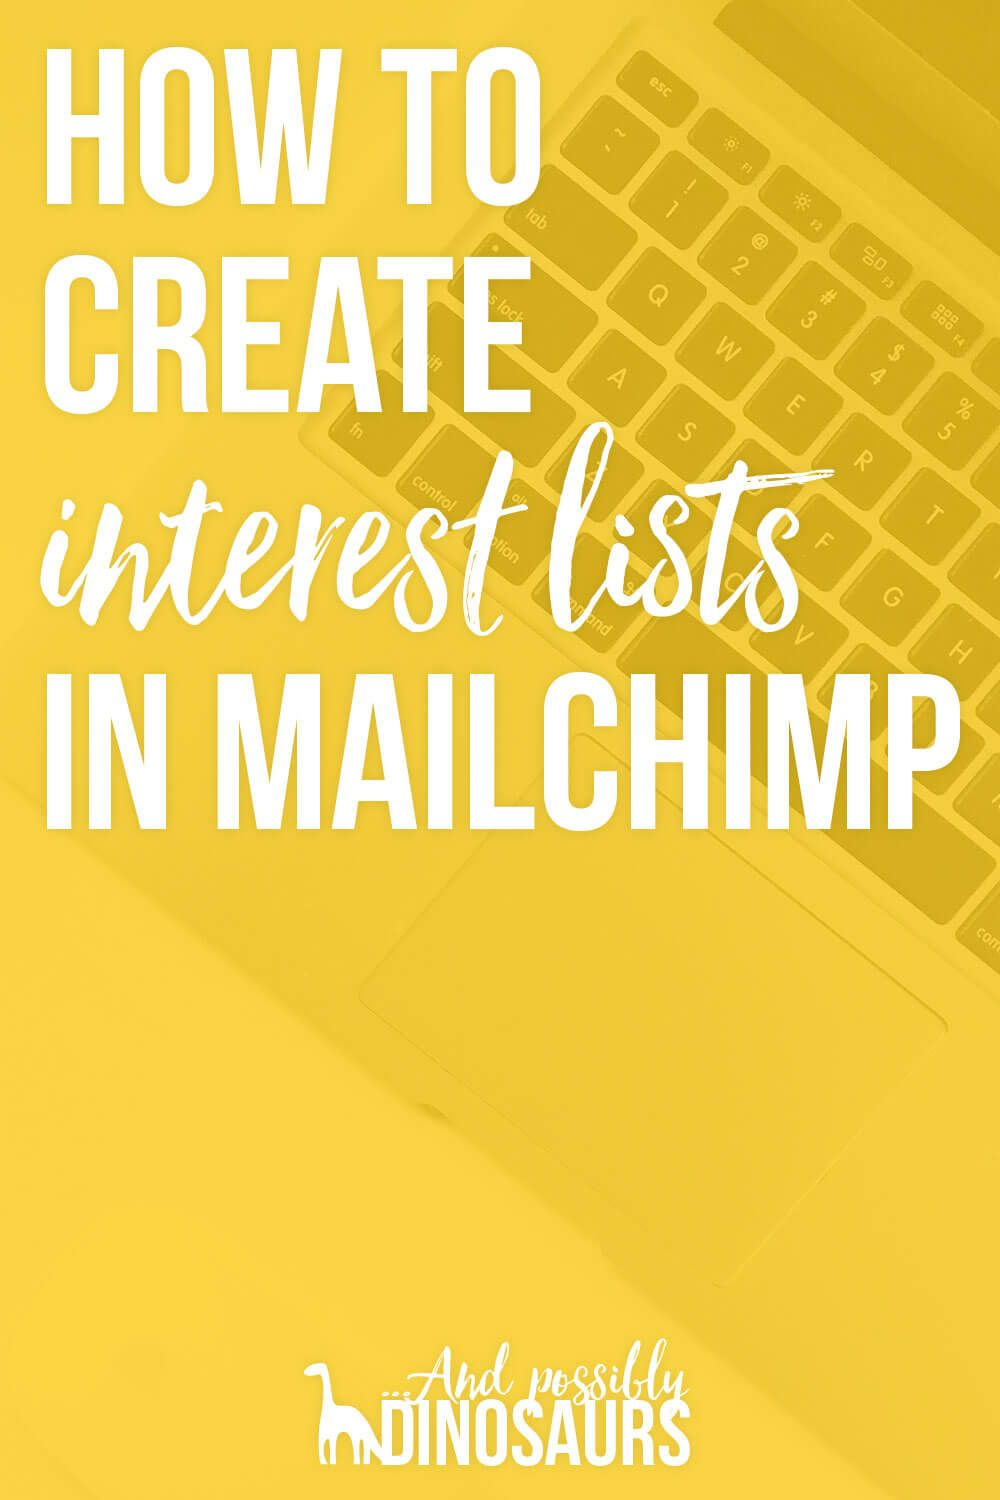 How To Create Interest Lists In Mailchimp And Possibly Dinosaurs Email Marketing Platform Email Marketing Inspiration Email Marketing Lists